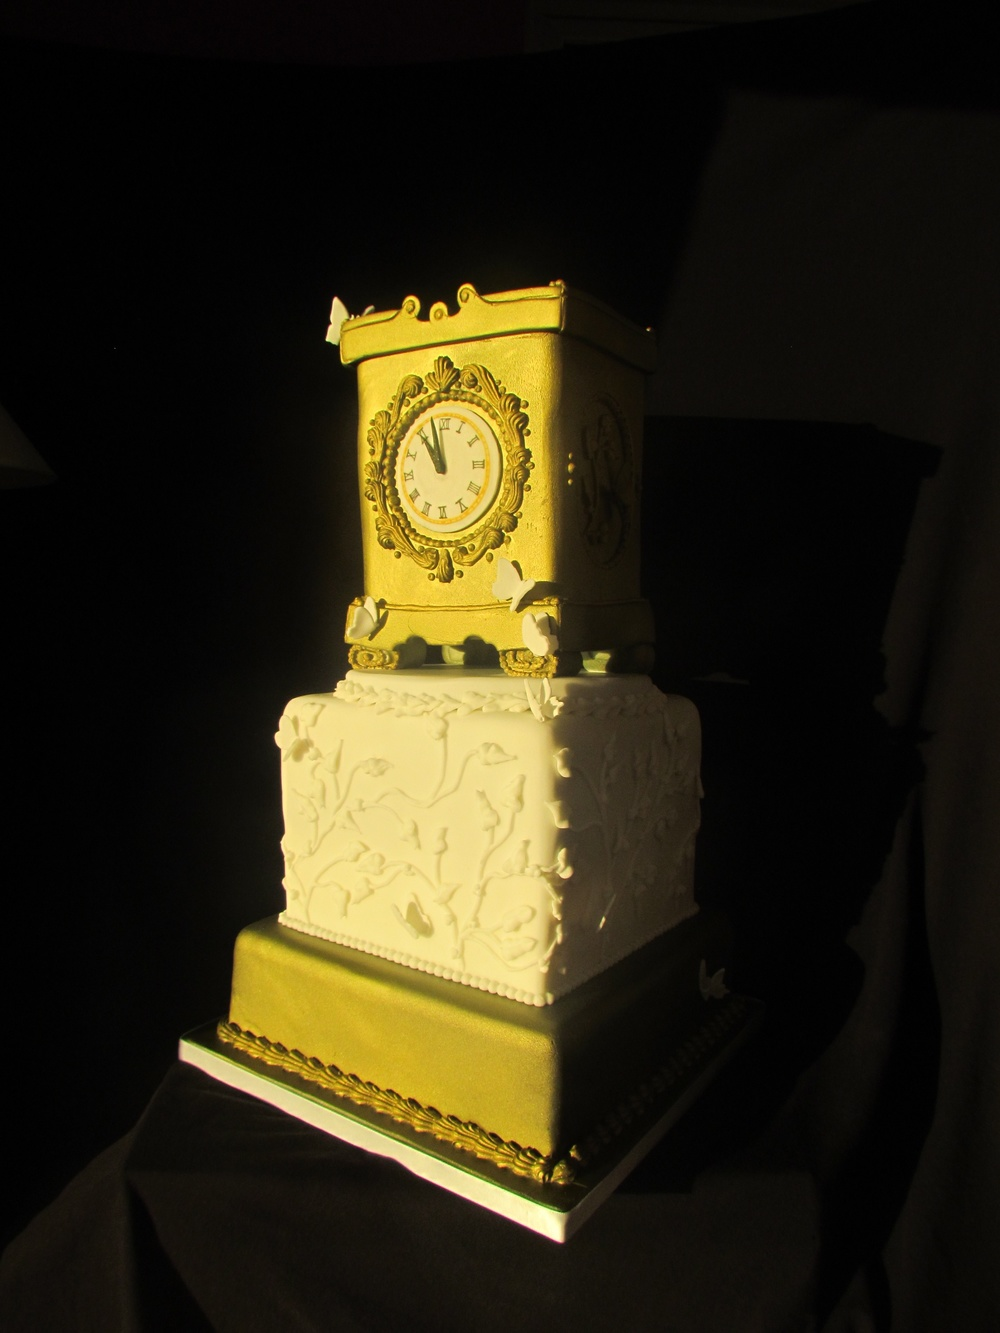 Cake-Peboryon-clock-winner-awards-delicious-cornwall-cakeshow-cake-show